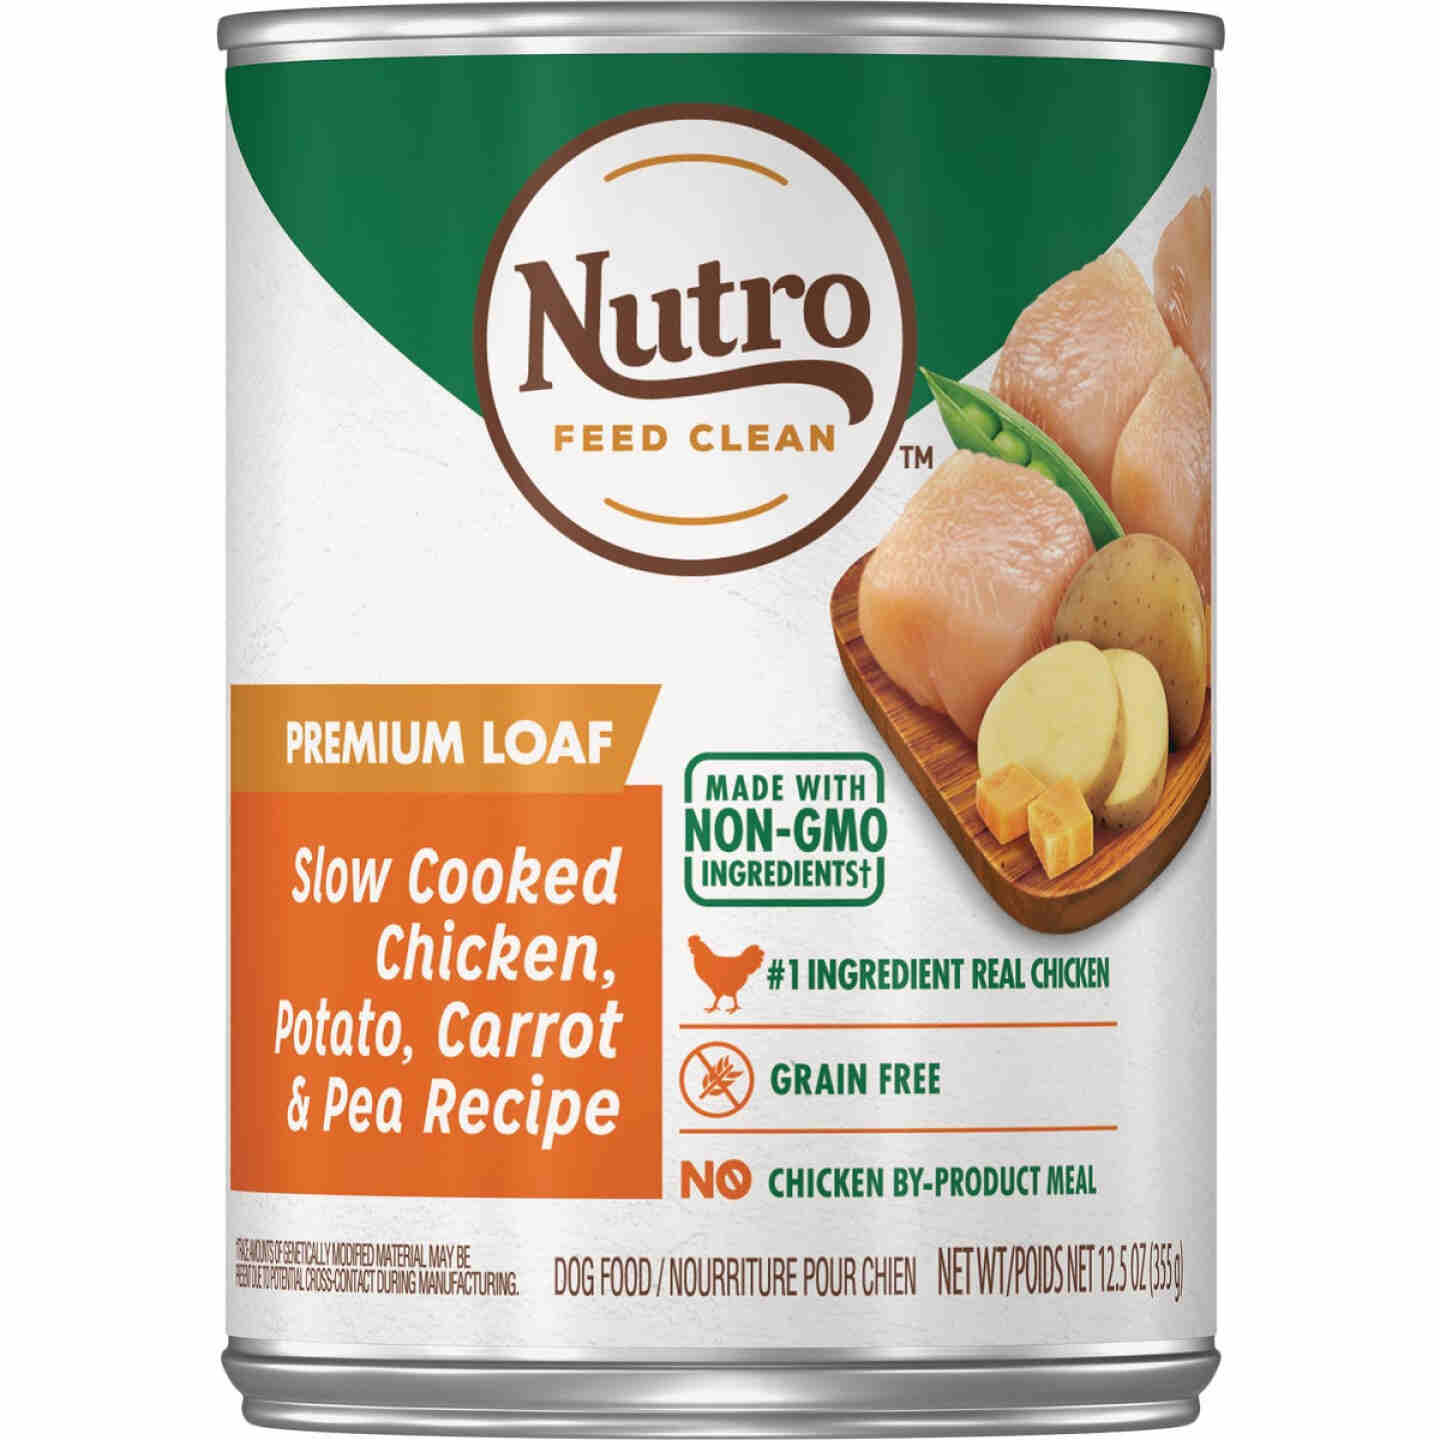 Nutro Grain Free Premium Loaf Slow Cooked Chicken, Potato, Carrot, & Pea Adult Wet Dog Food, 12.5 Oz. Image 1